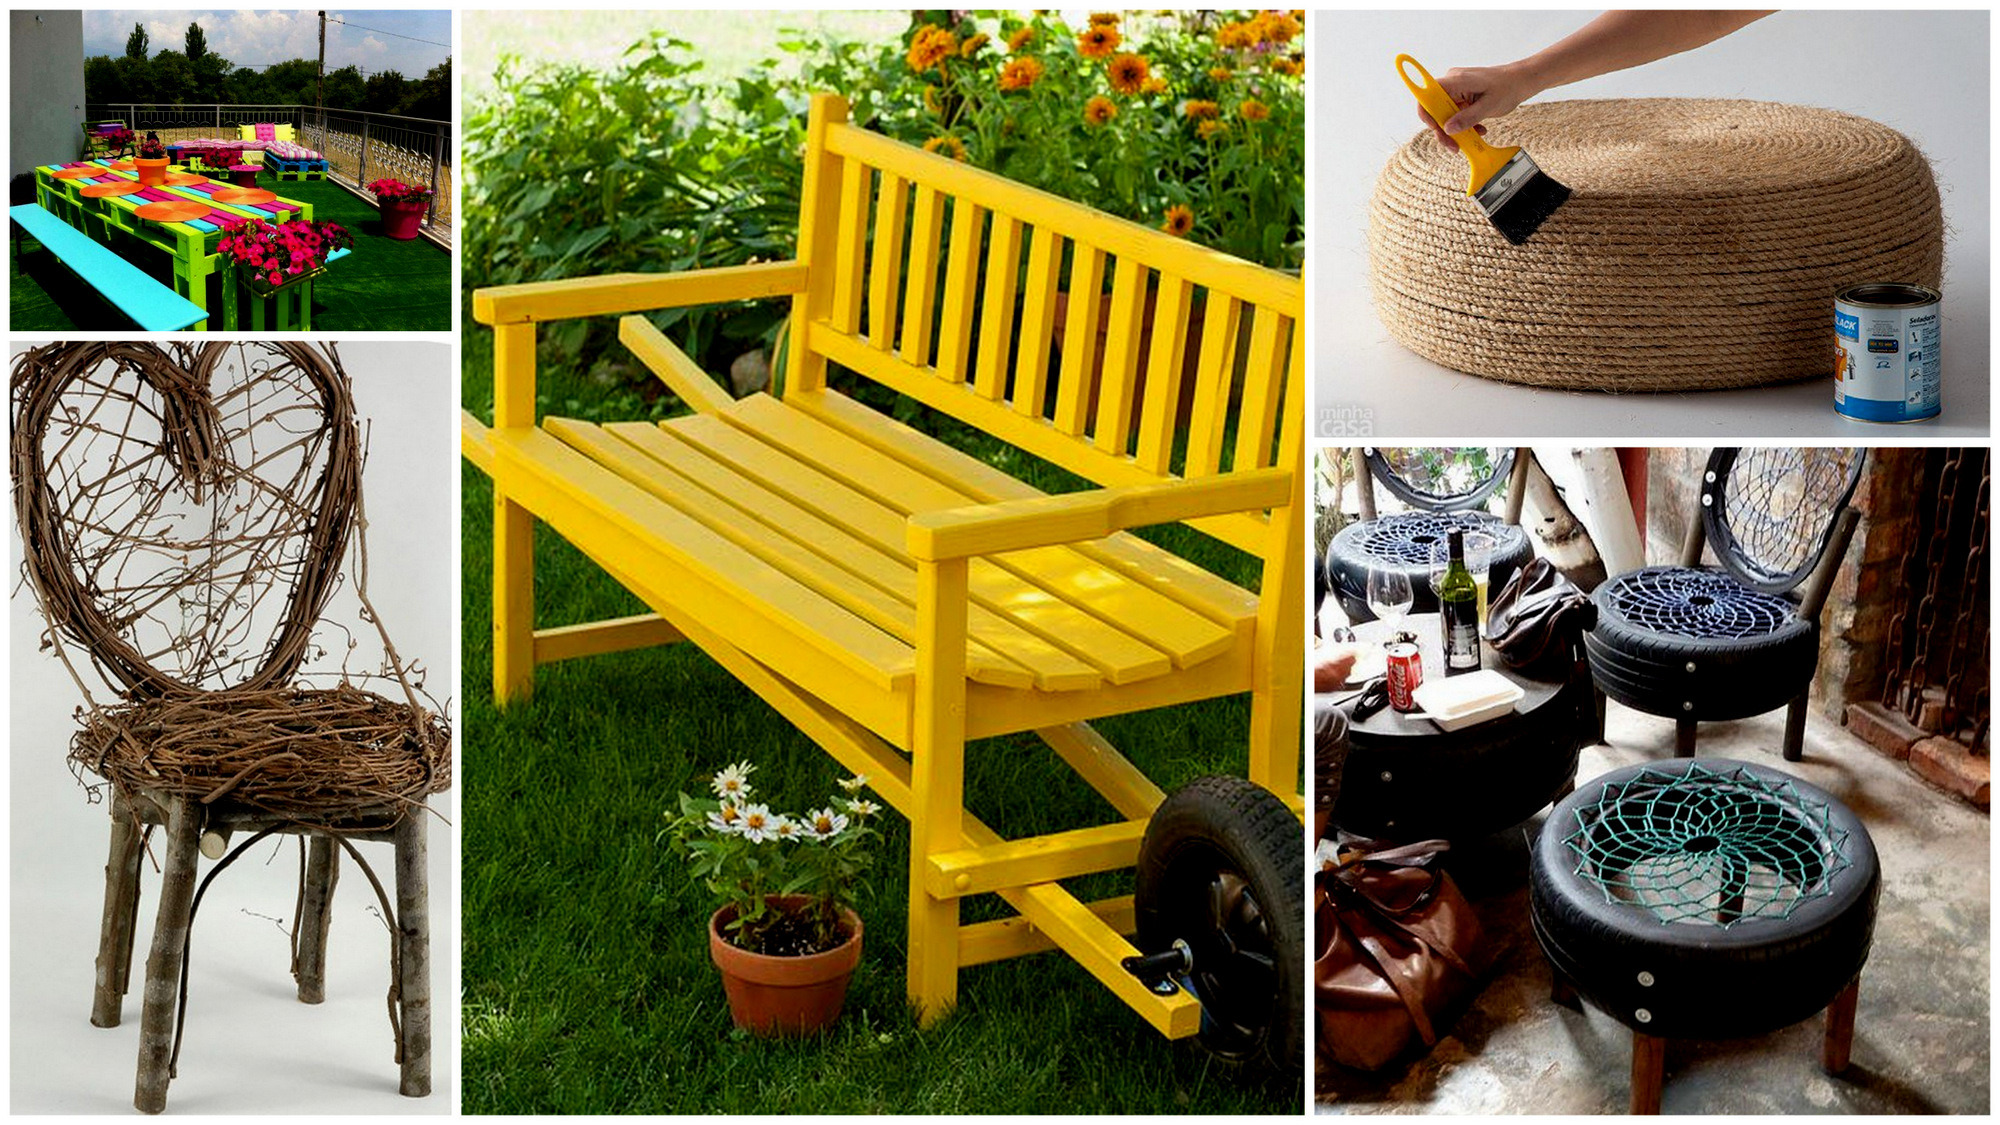 diy-garden-projects-2